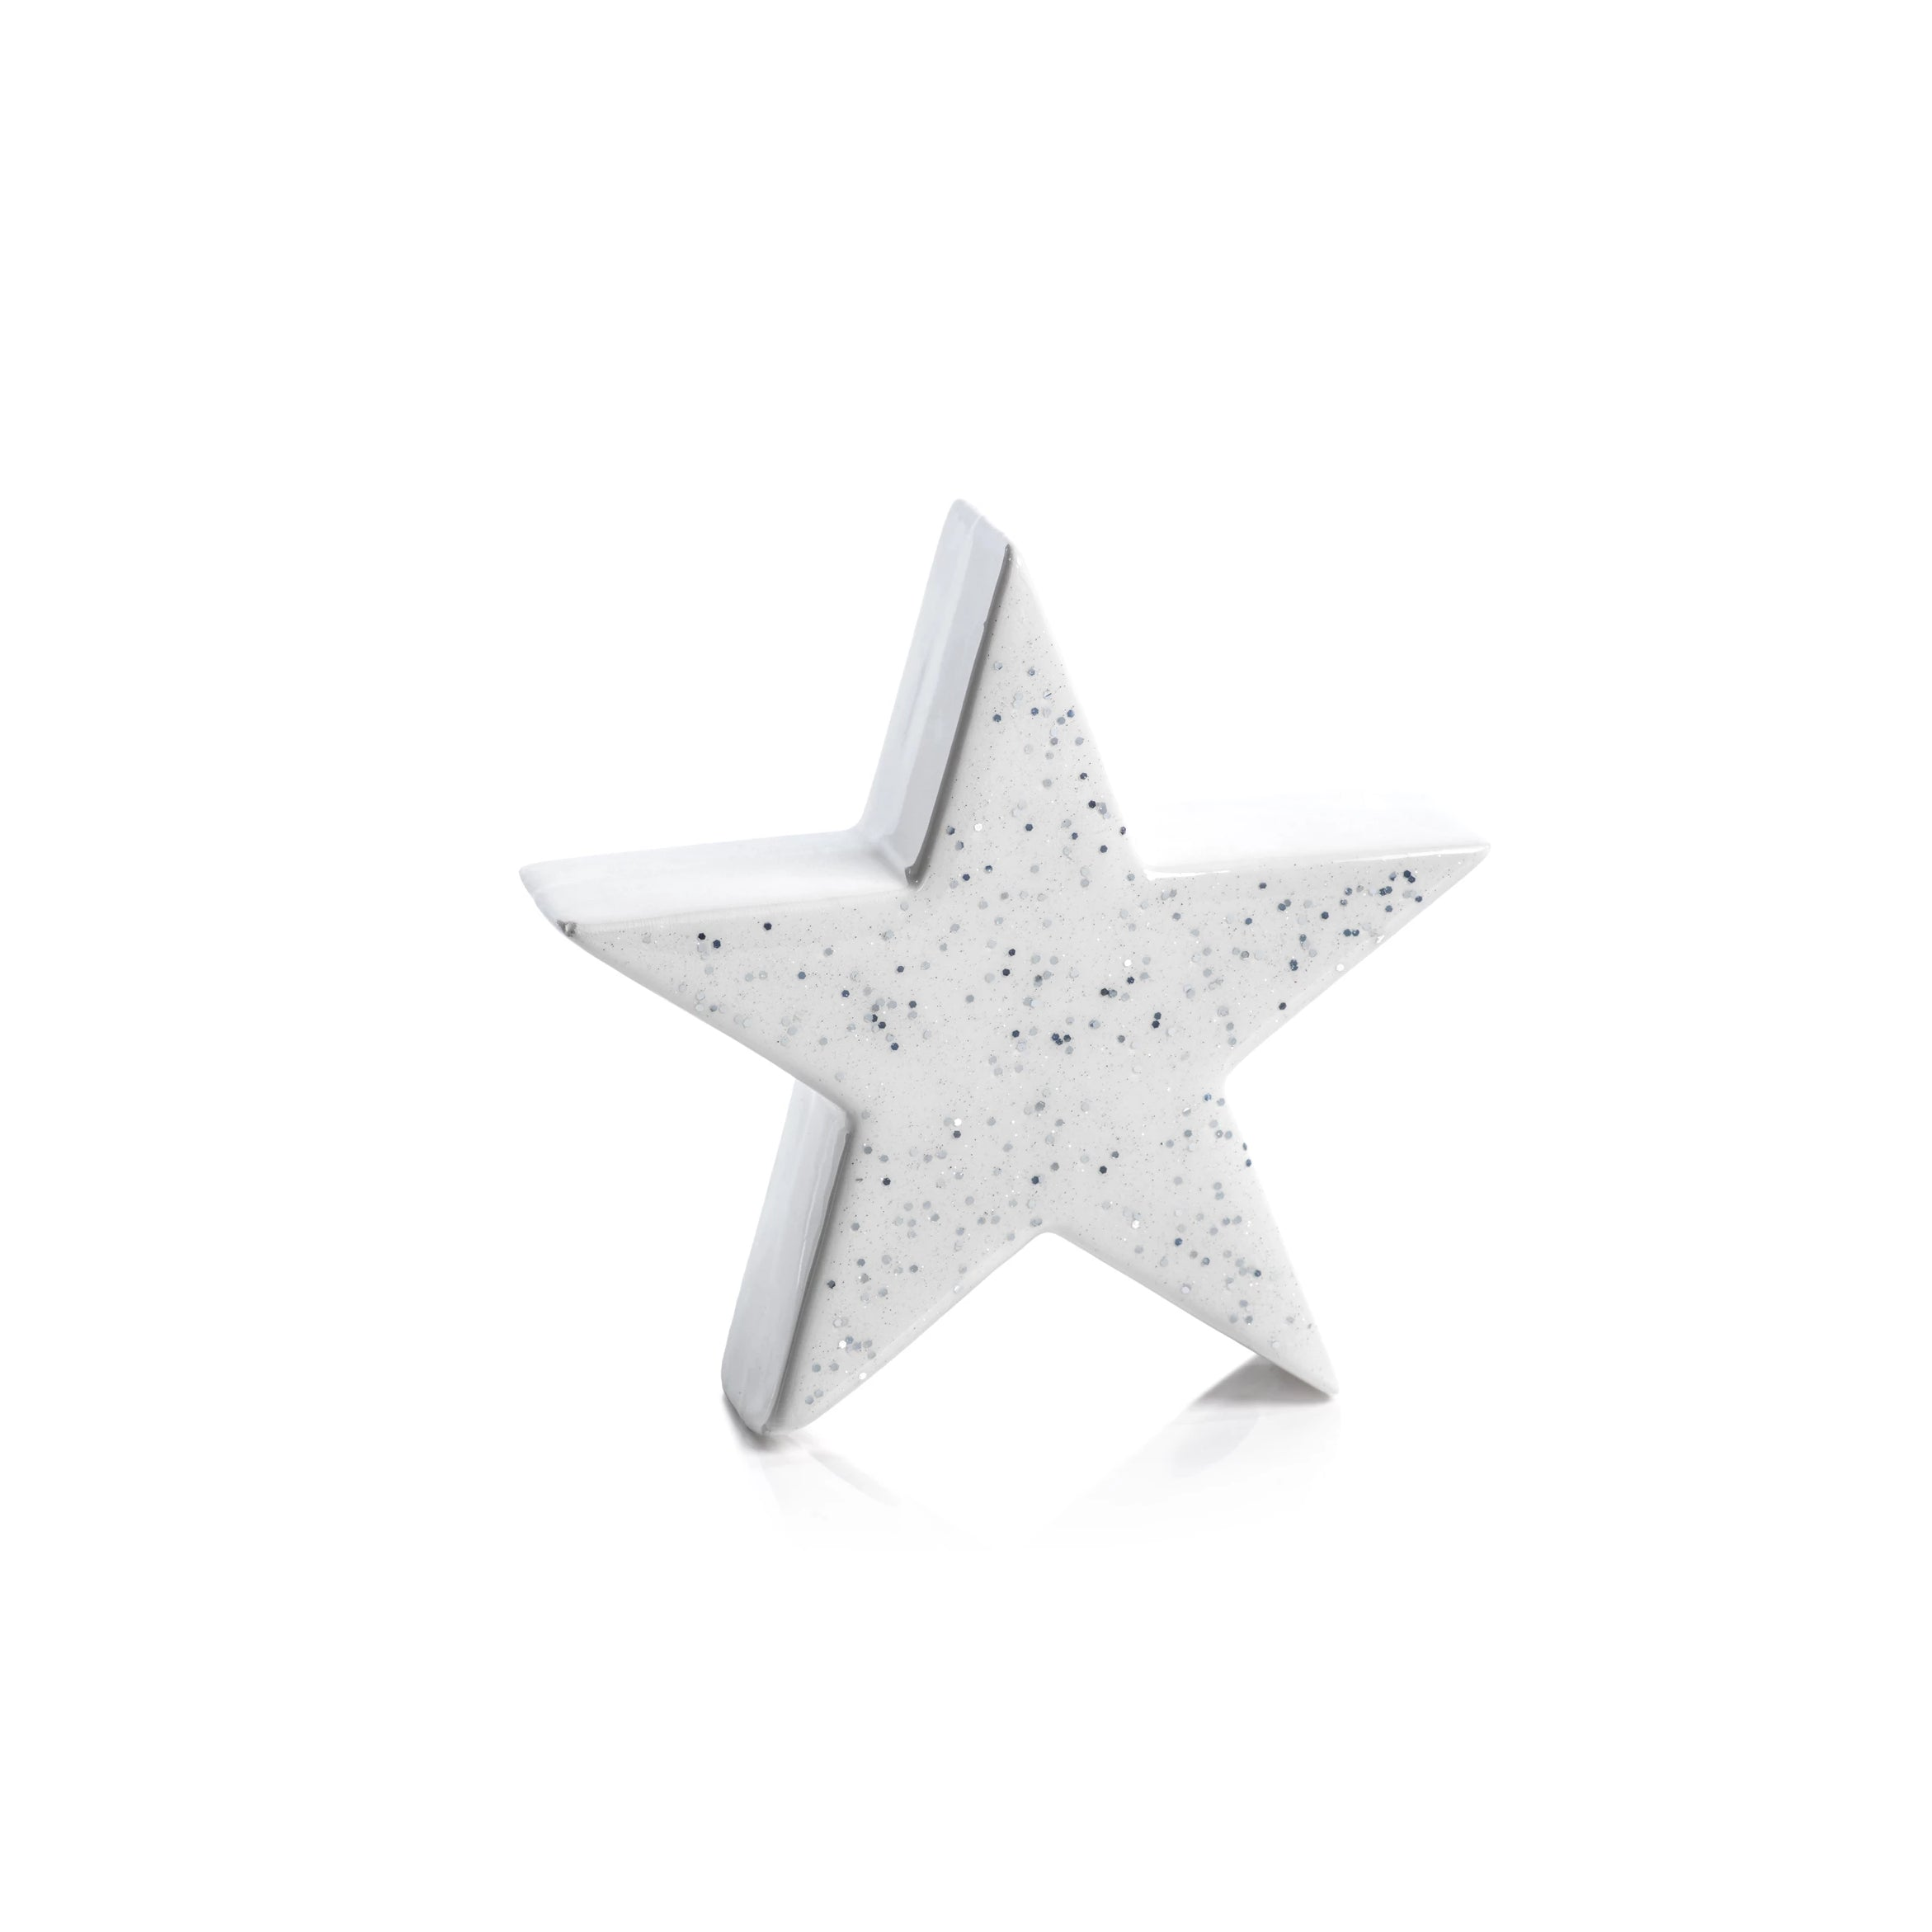 Speckled Decorative Star - CARLYLE AVENUE